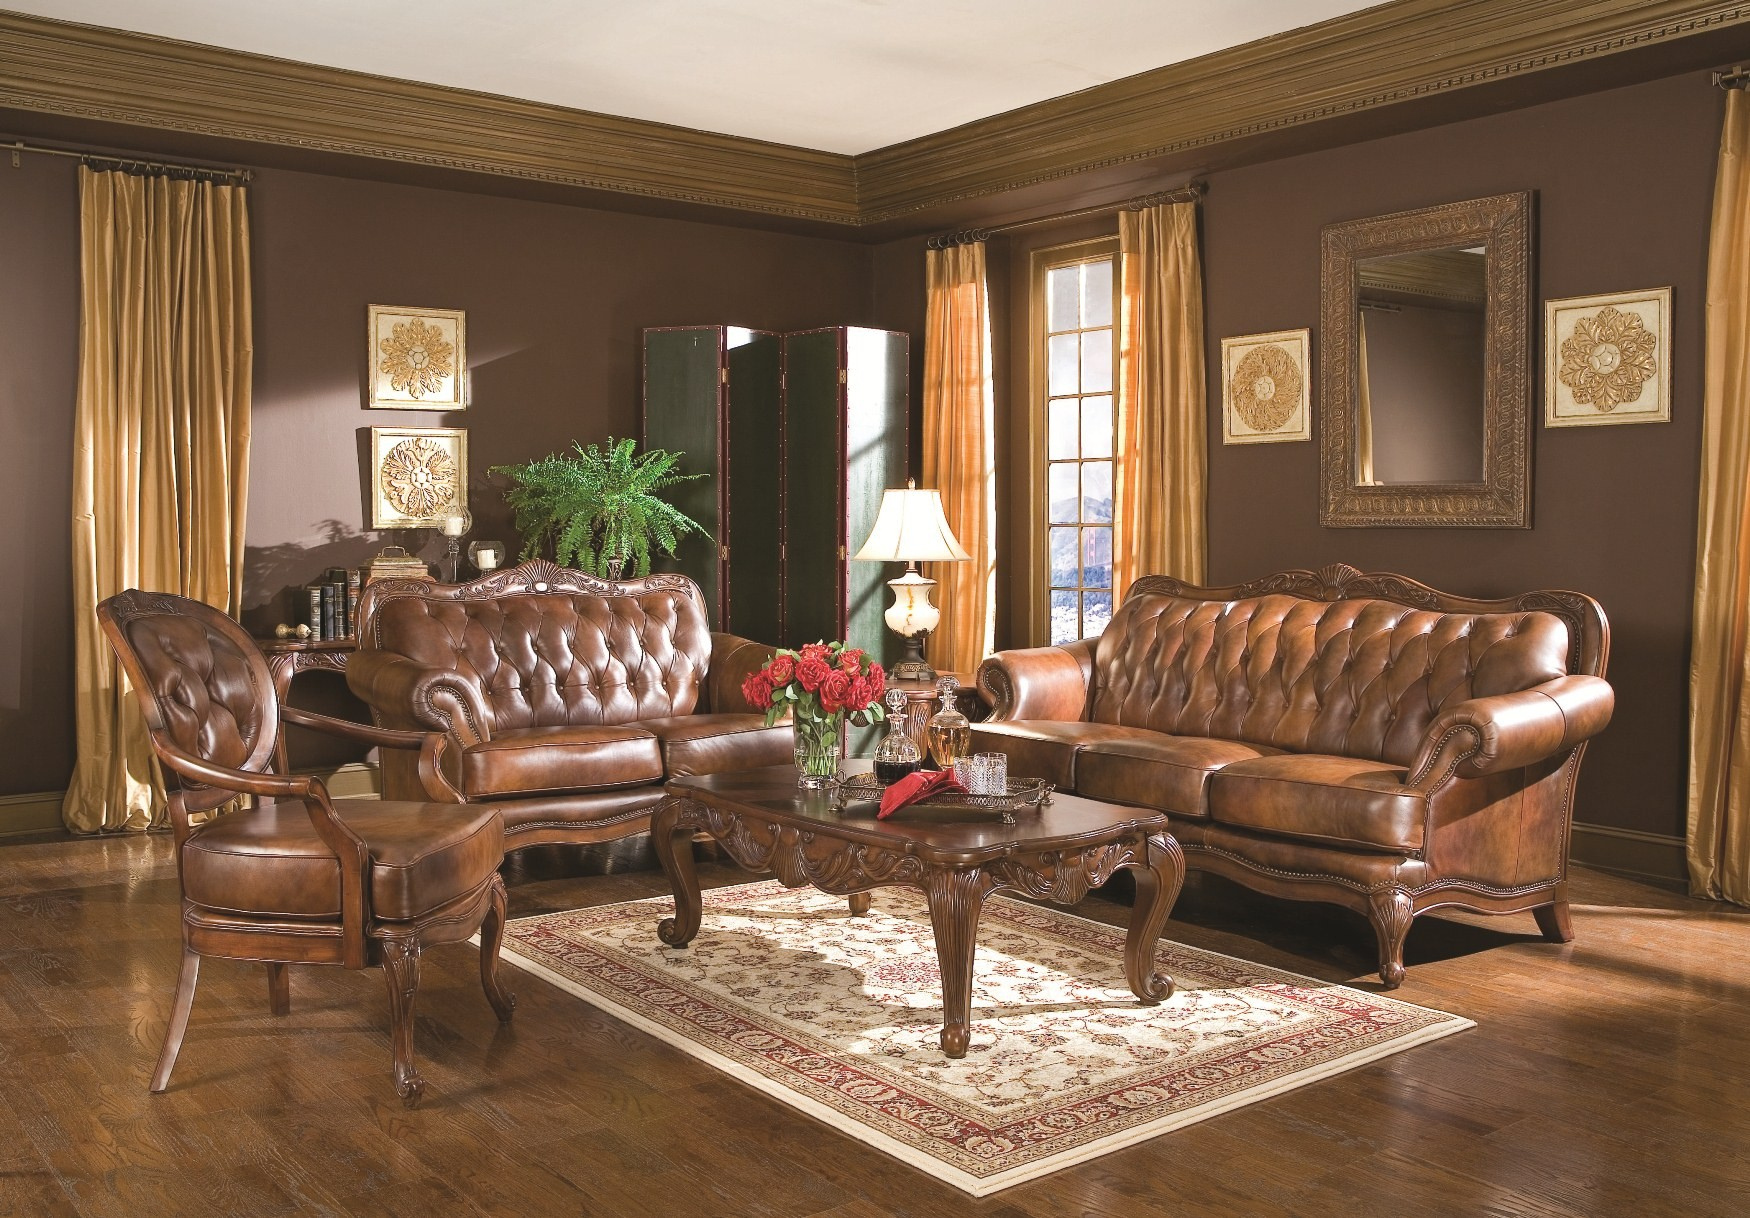 Victoria Living Room Set 50068 pertaining to 10 Smart Concepts of How to Craft Living Room Set For Sale Cheap